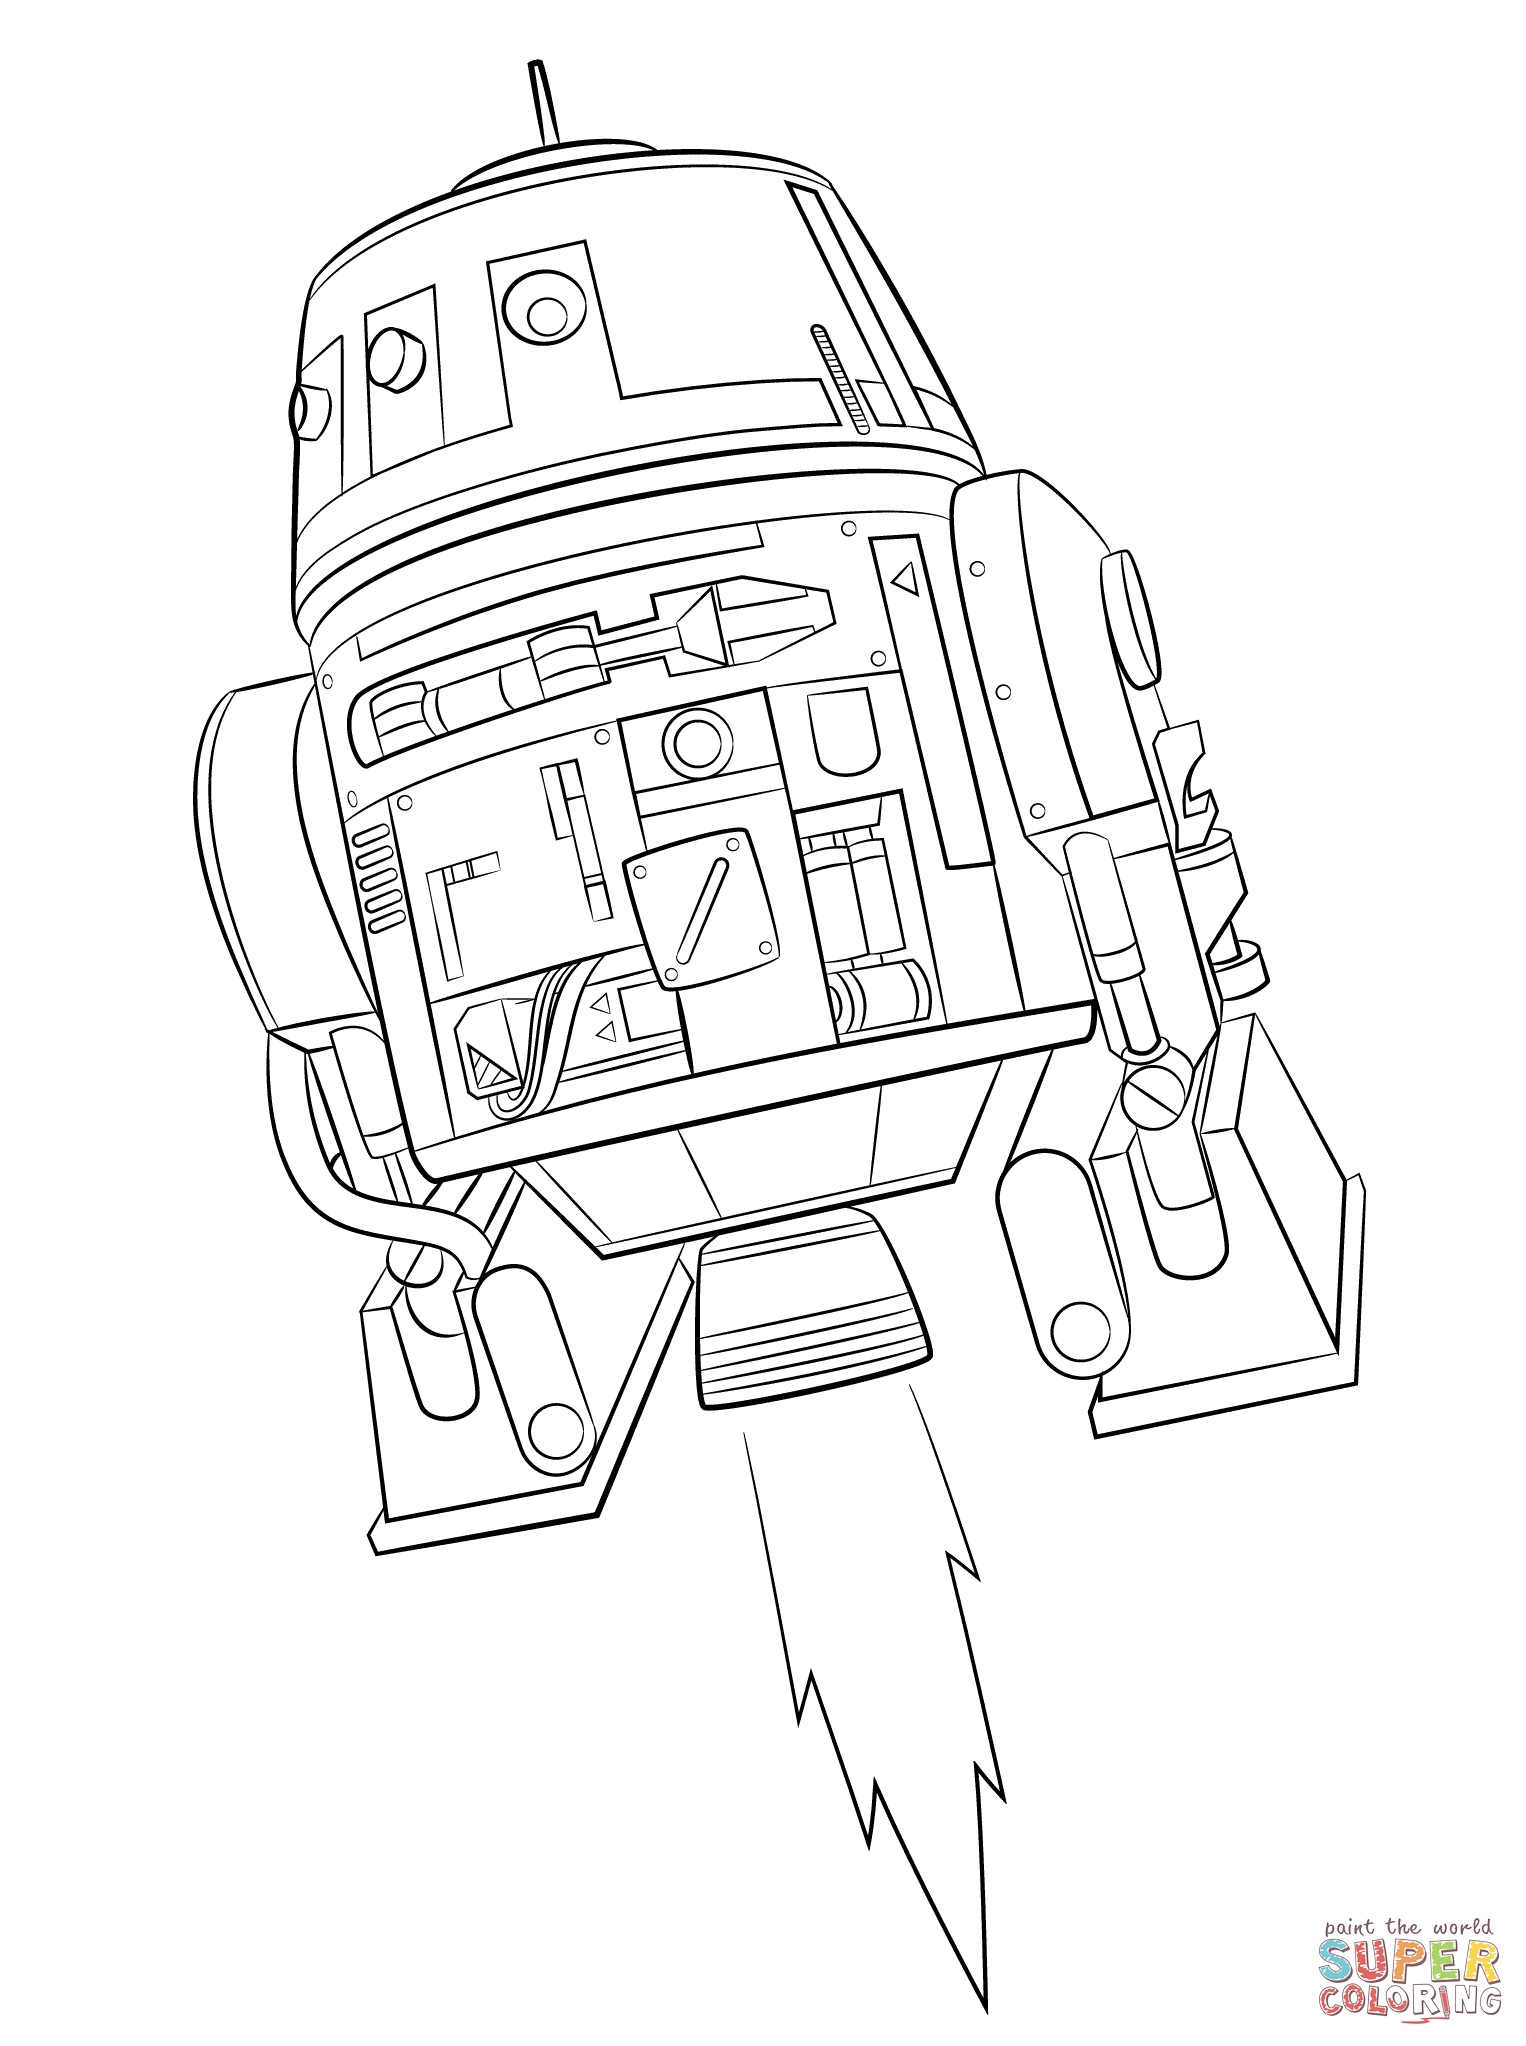 Star Wars Rebels Chopper coloring page SuperColoring